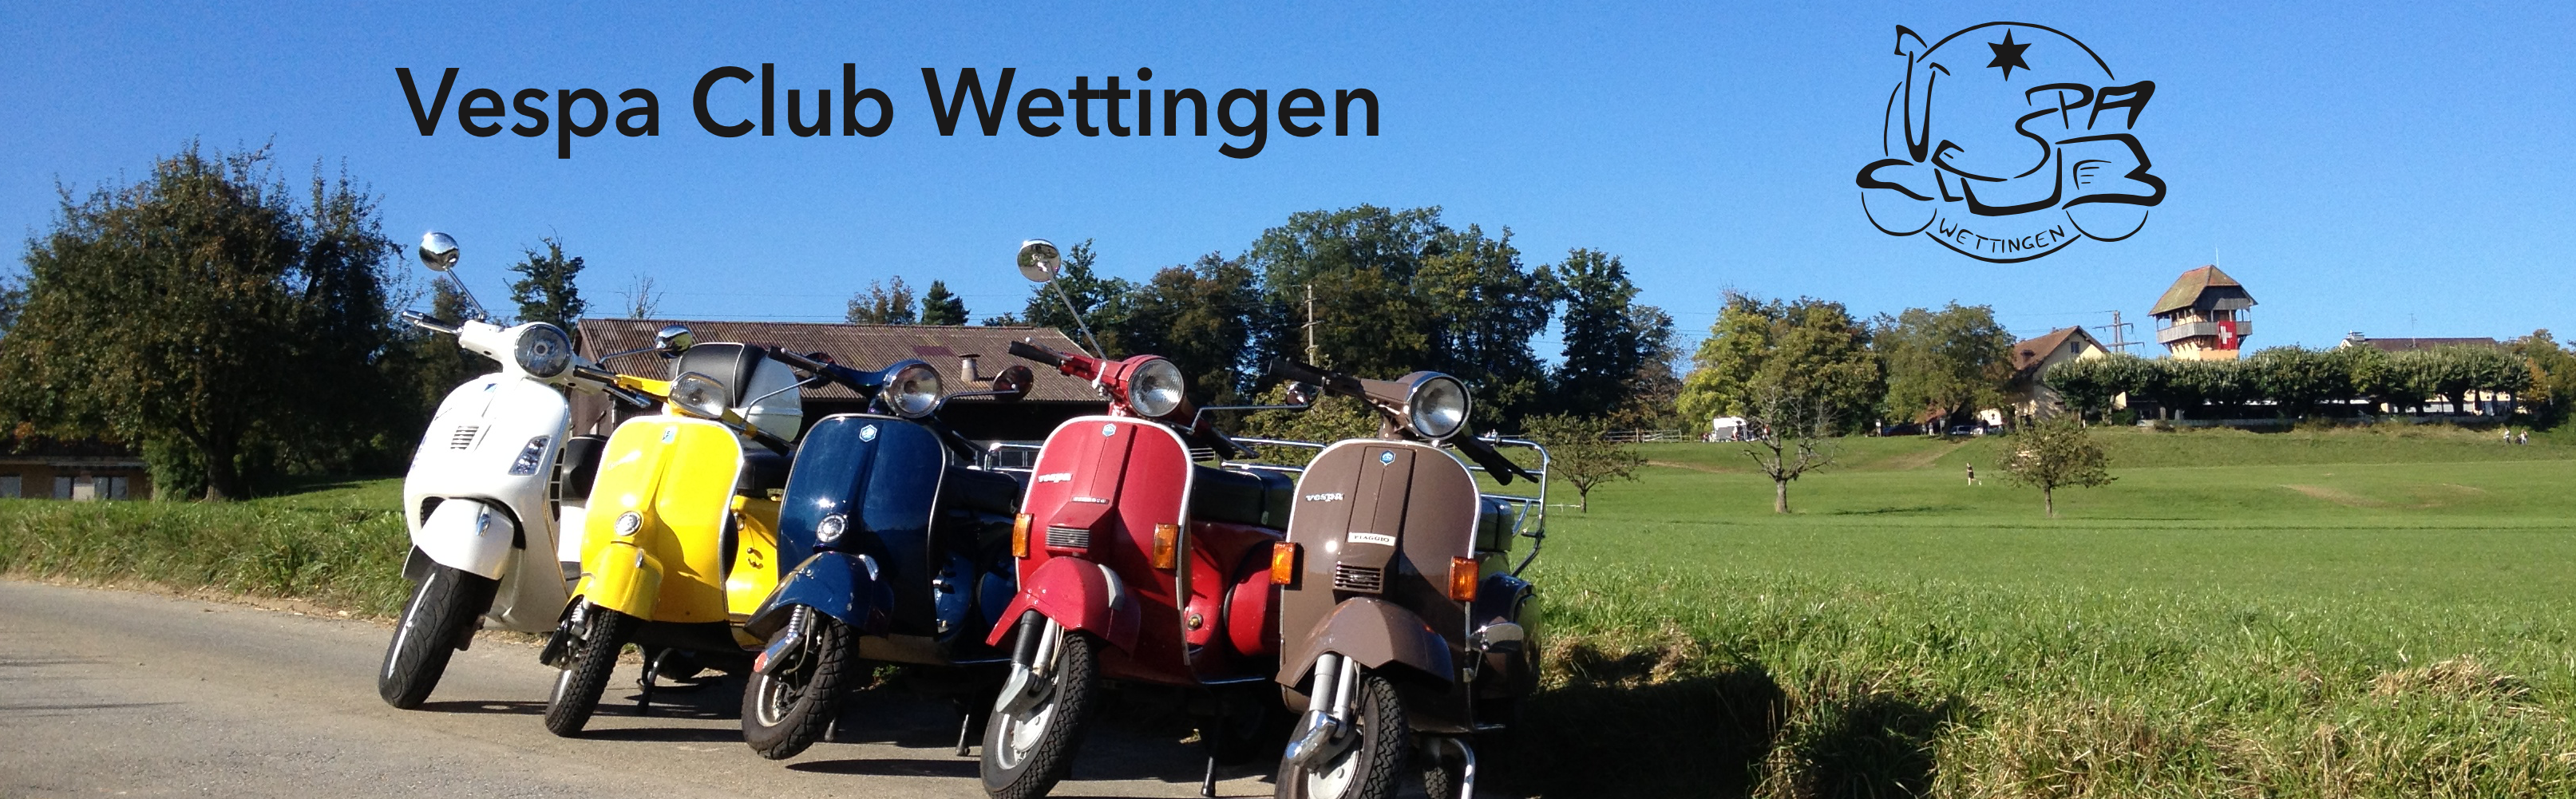 Vespa Club Wettingen